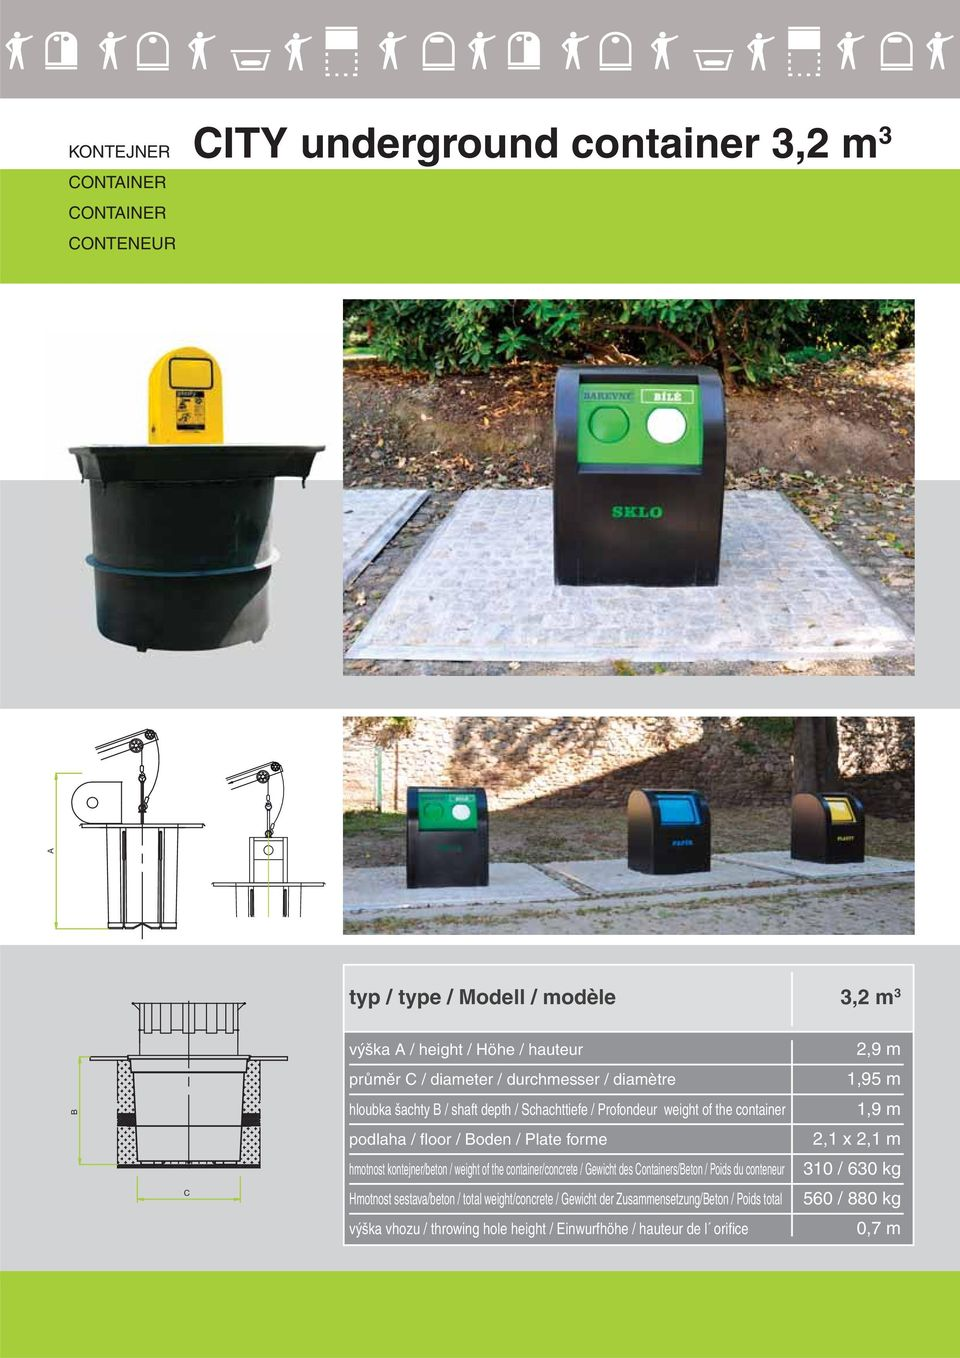 weight of the container/concrete / Gewicht des Containers/Beton / Poids du conteneur Hmotnost sestava/beton / total weight/concrete / Gewicht der